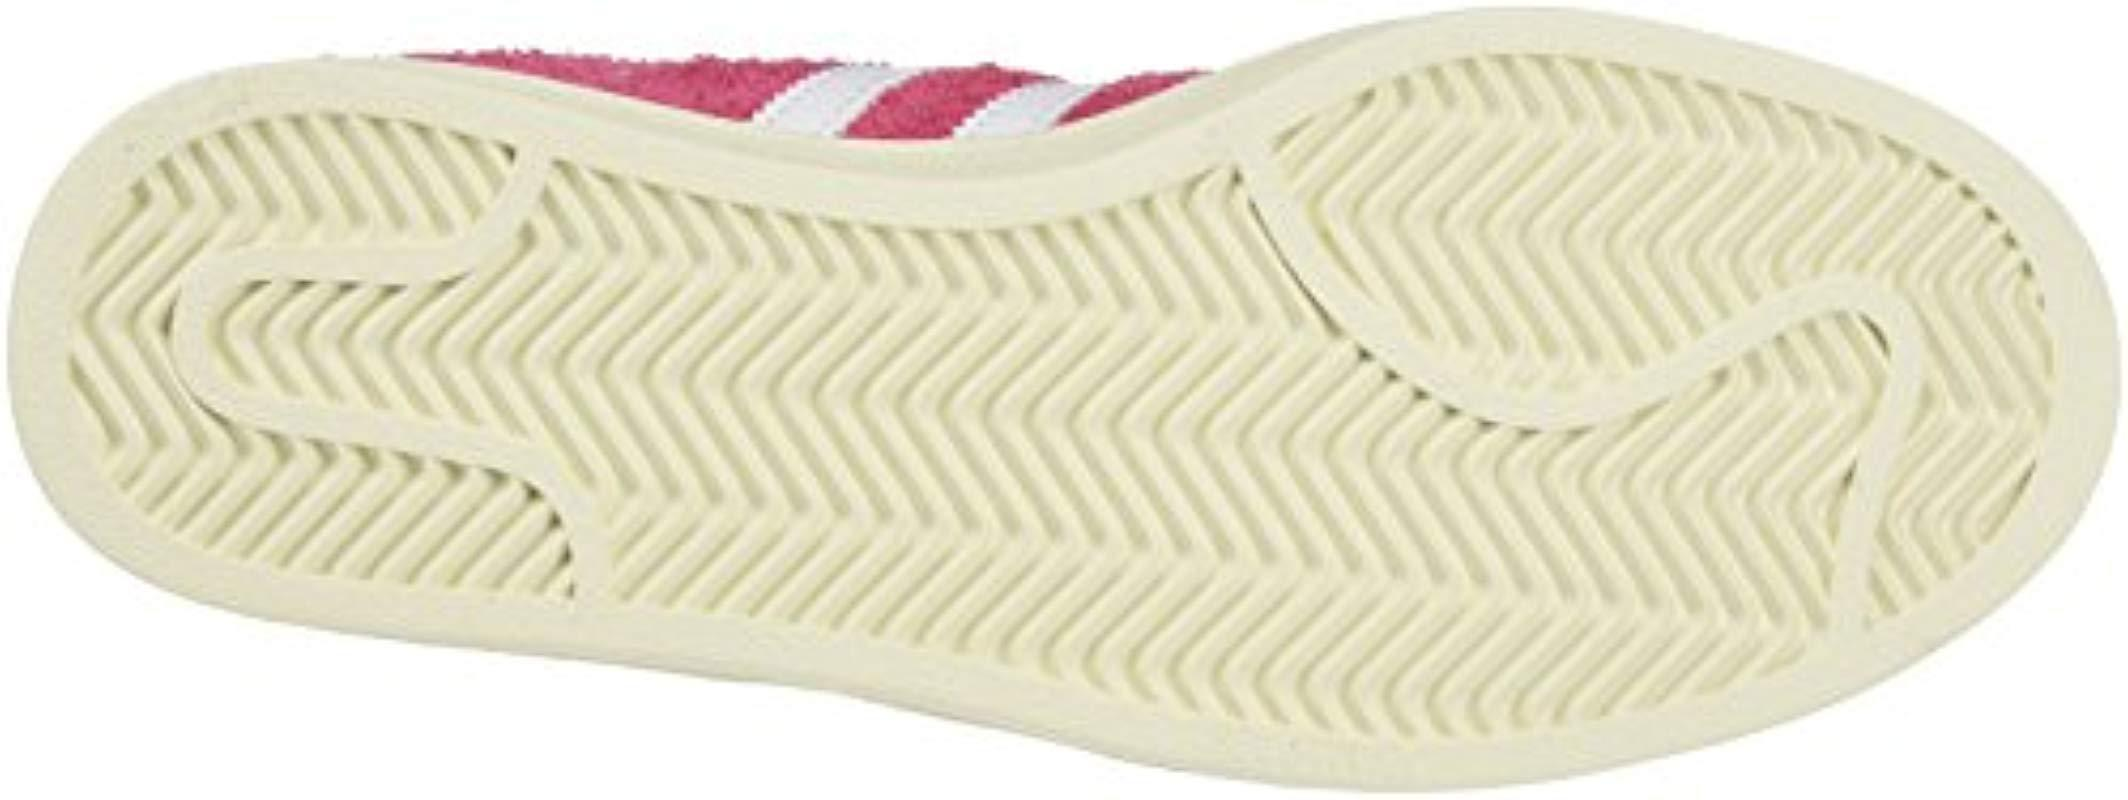 Adidas Originals Pink Campus Trainers in Pink for Men - Lyst 94b31af5875